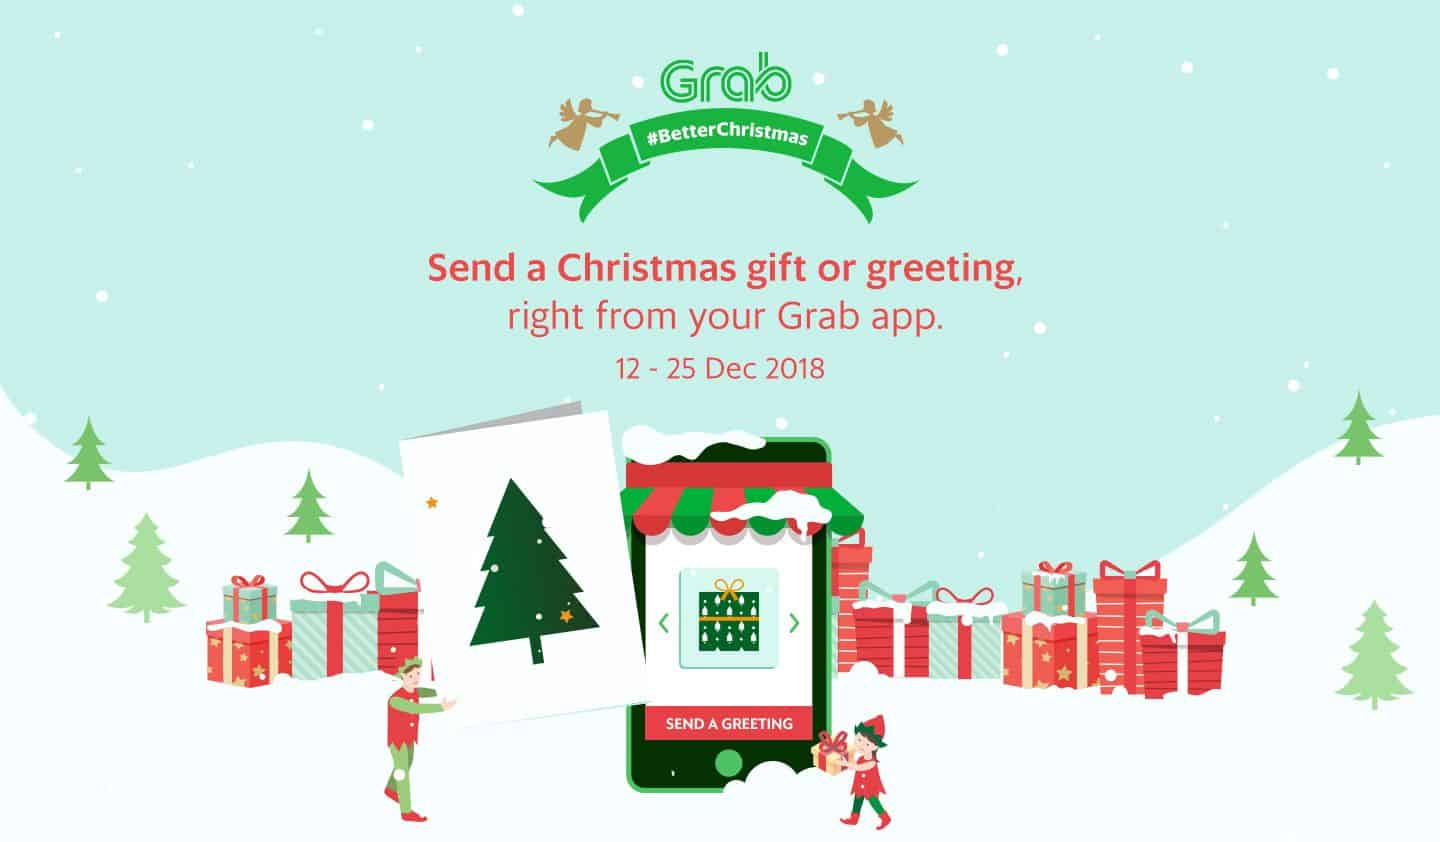 Send a Christmas gift or greeting, right from your Grab app. 12-25 Dec 2018